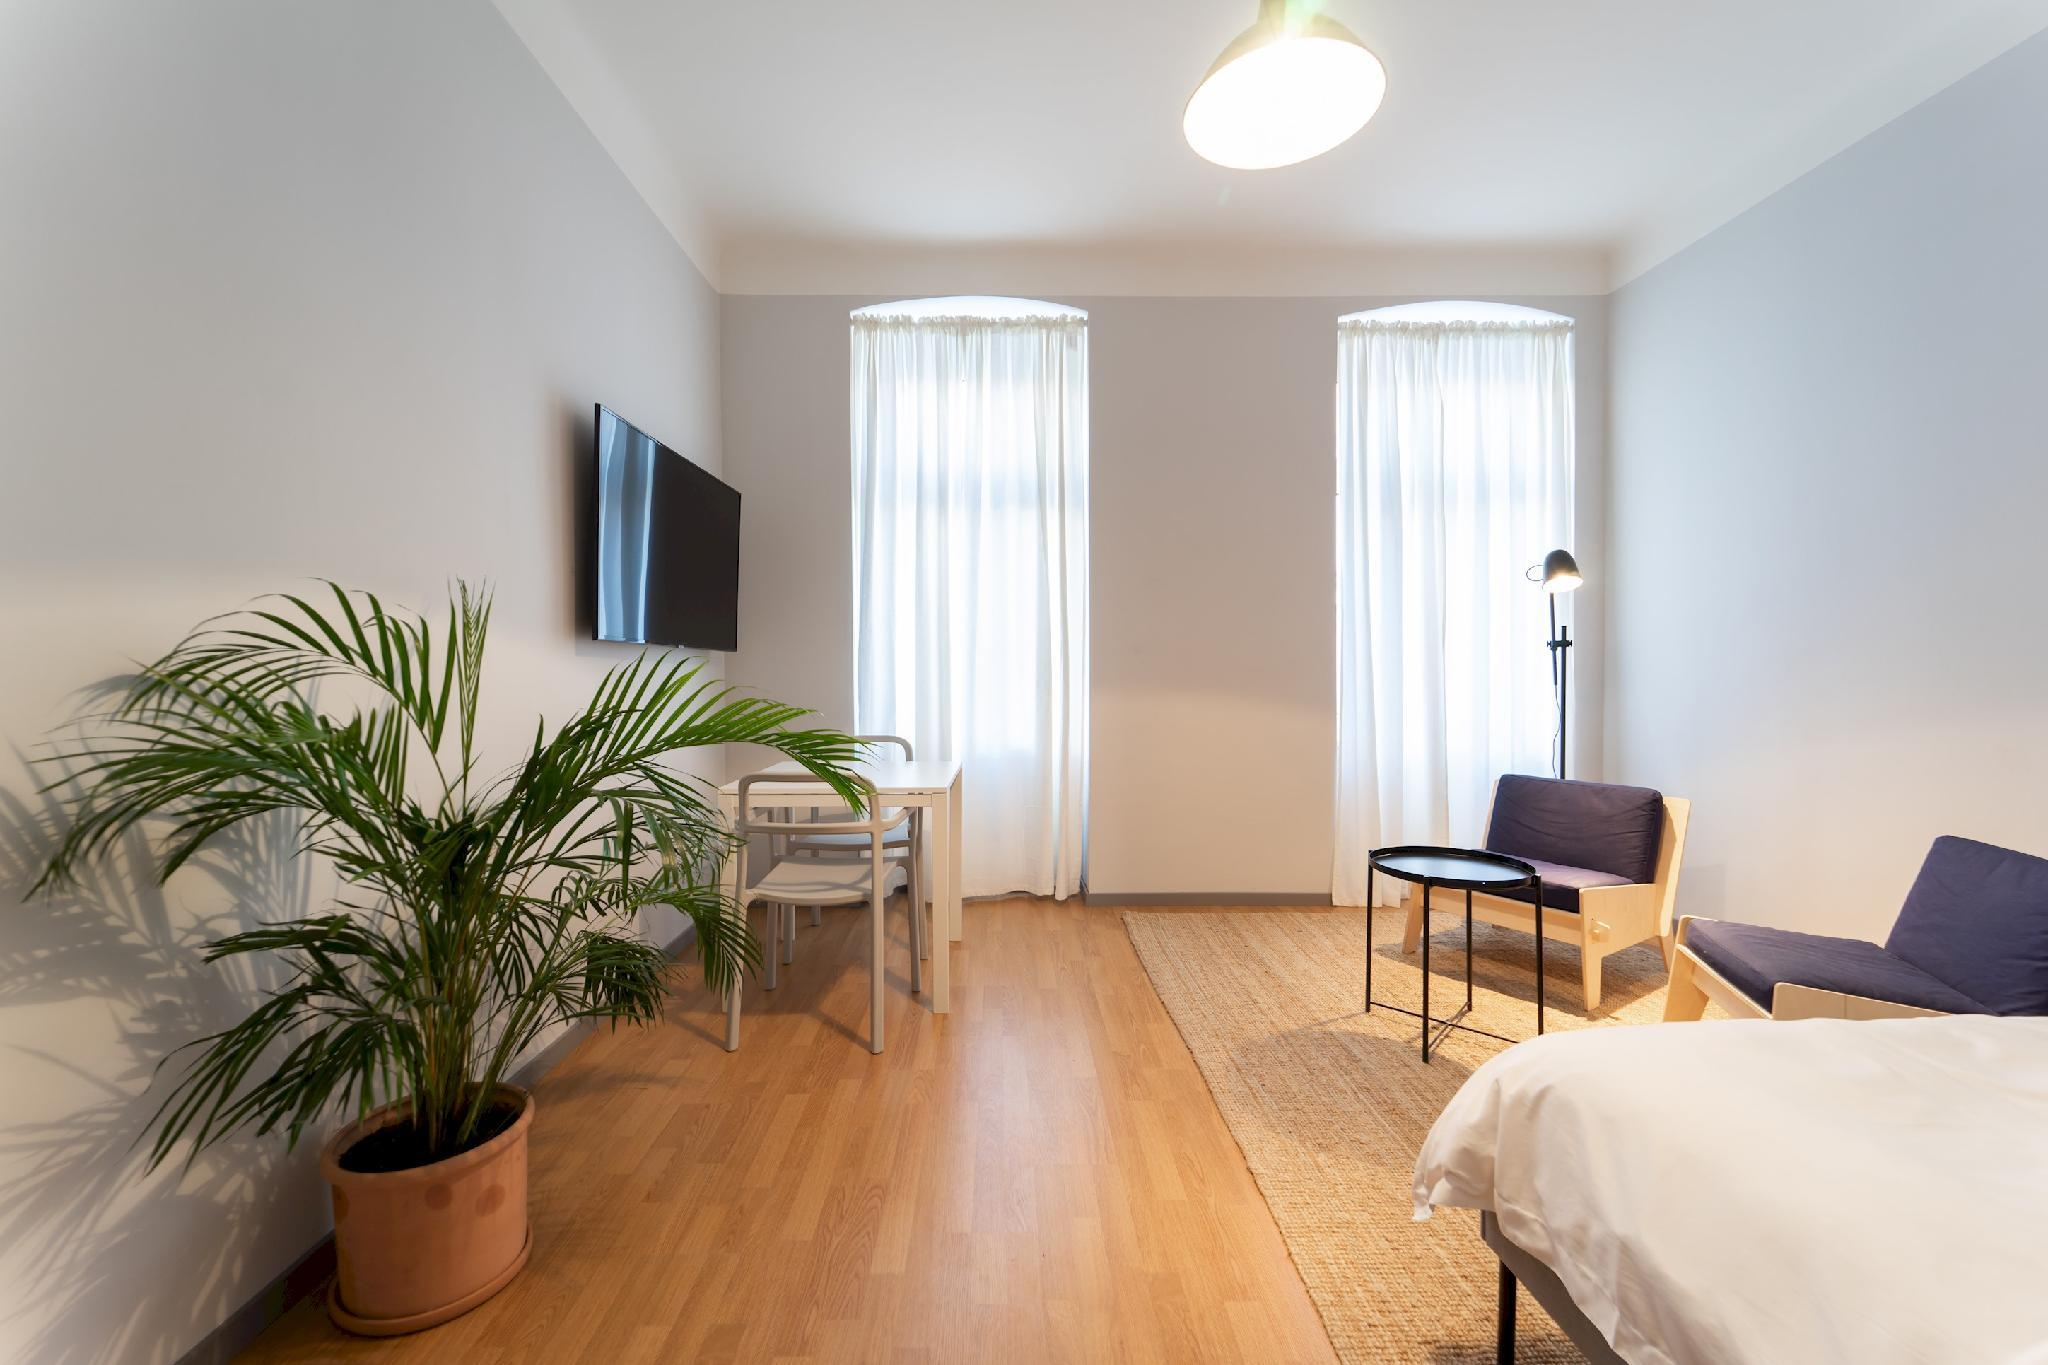 Cute and Cozy Studio - CLOSE TO THE CENTER